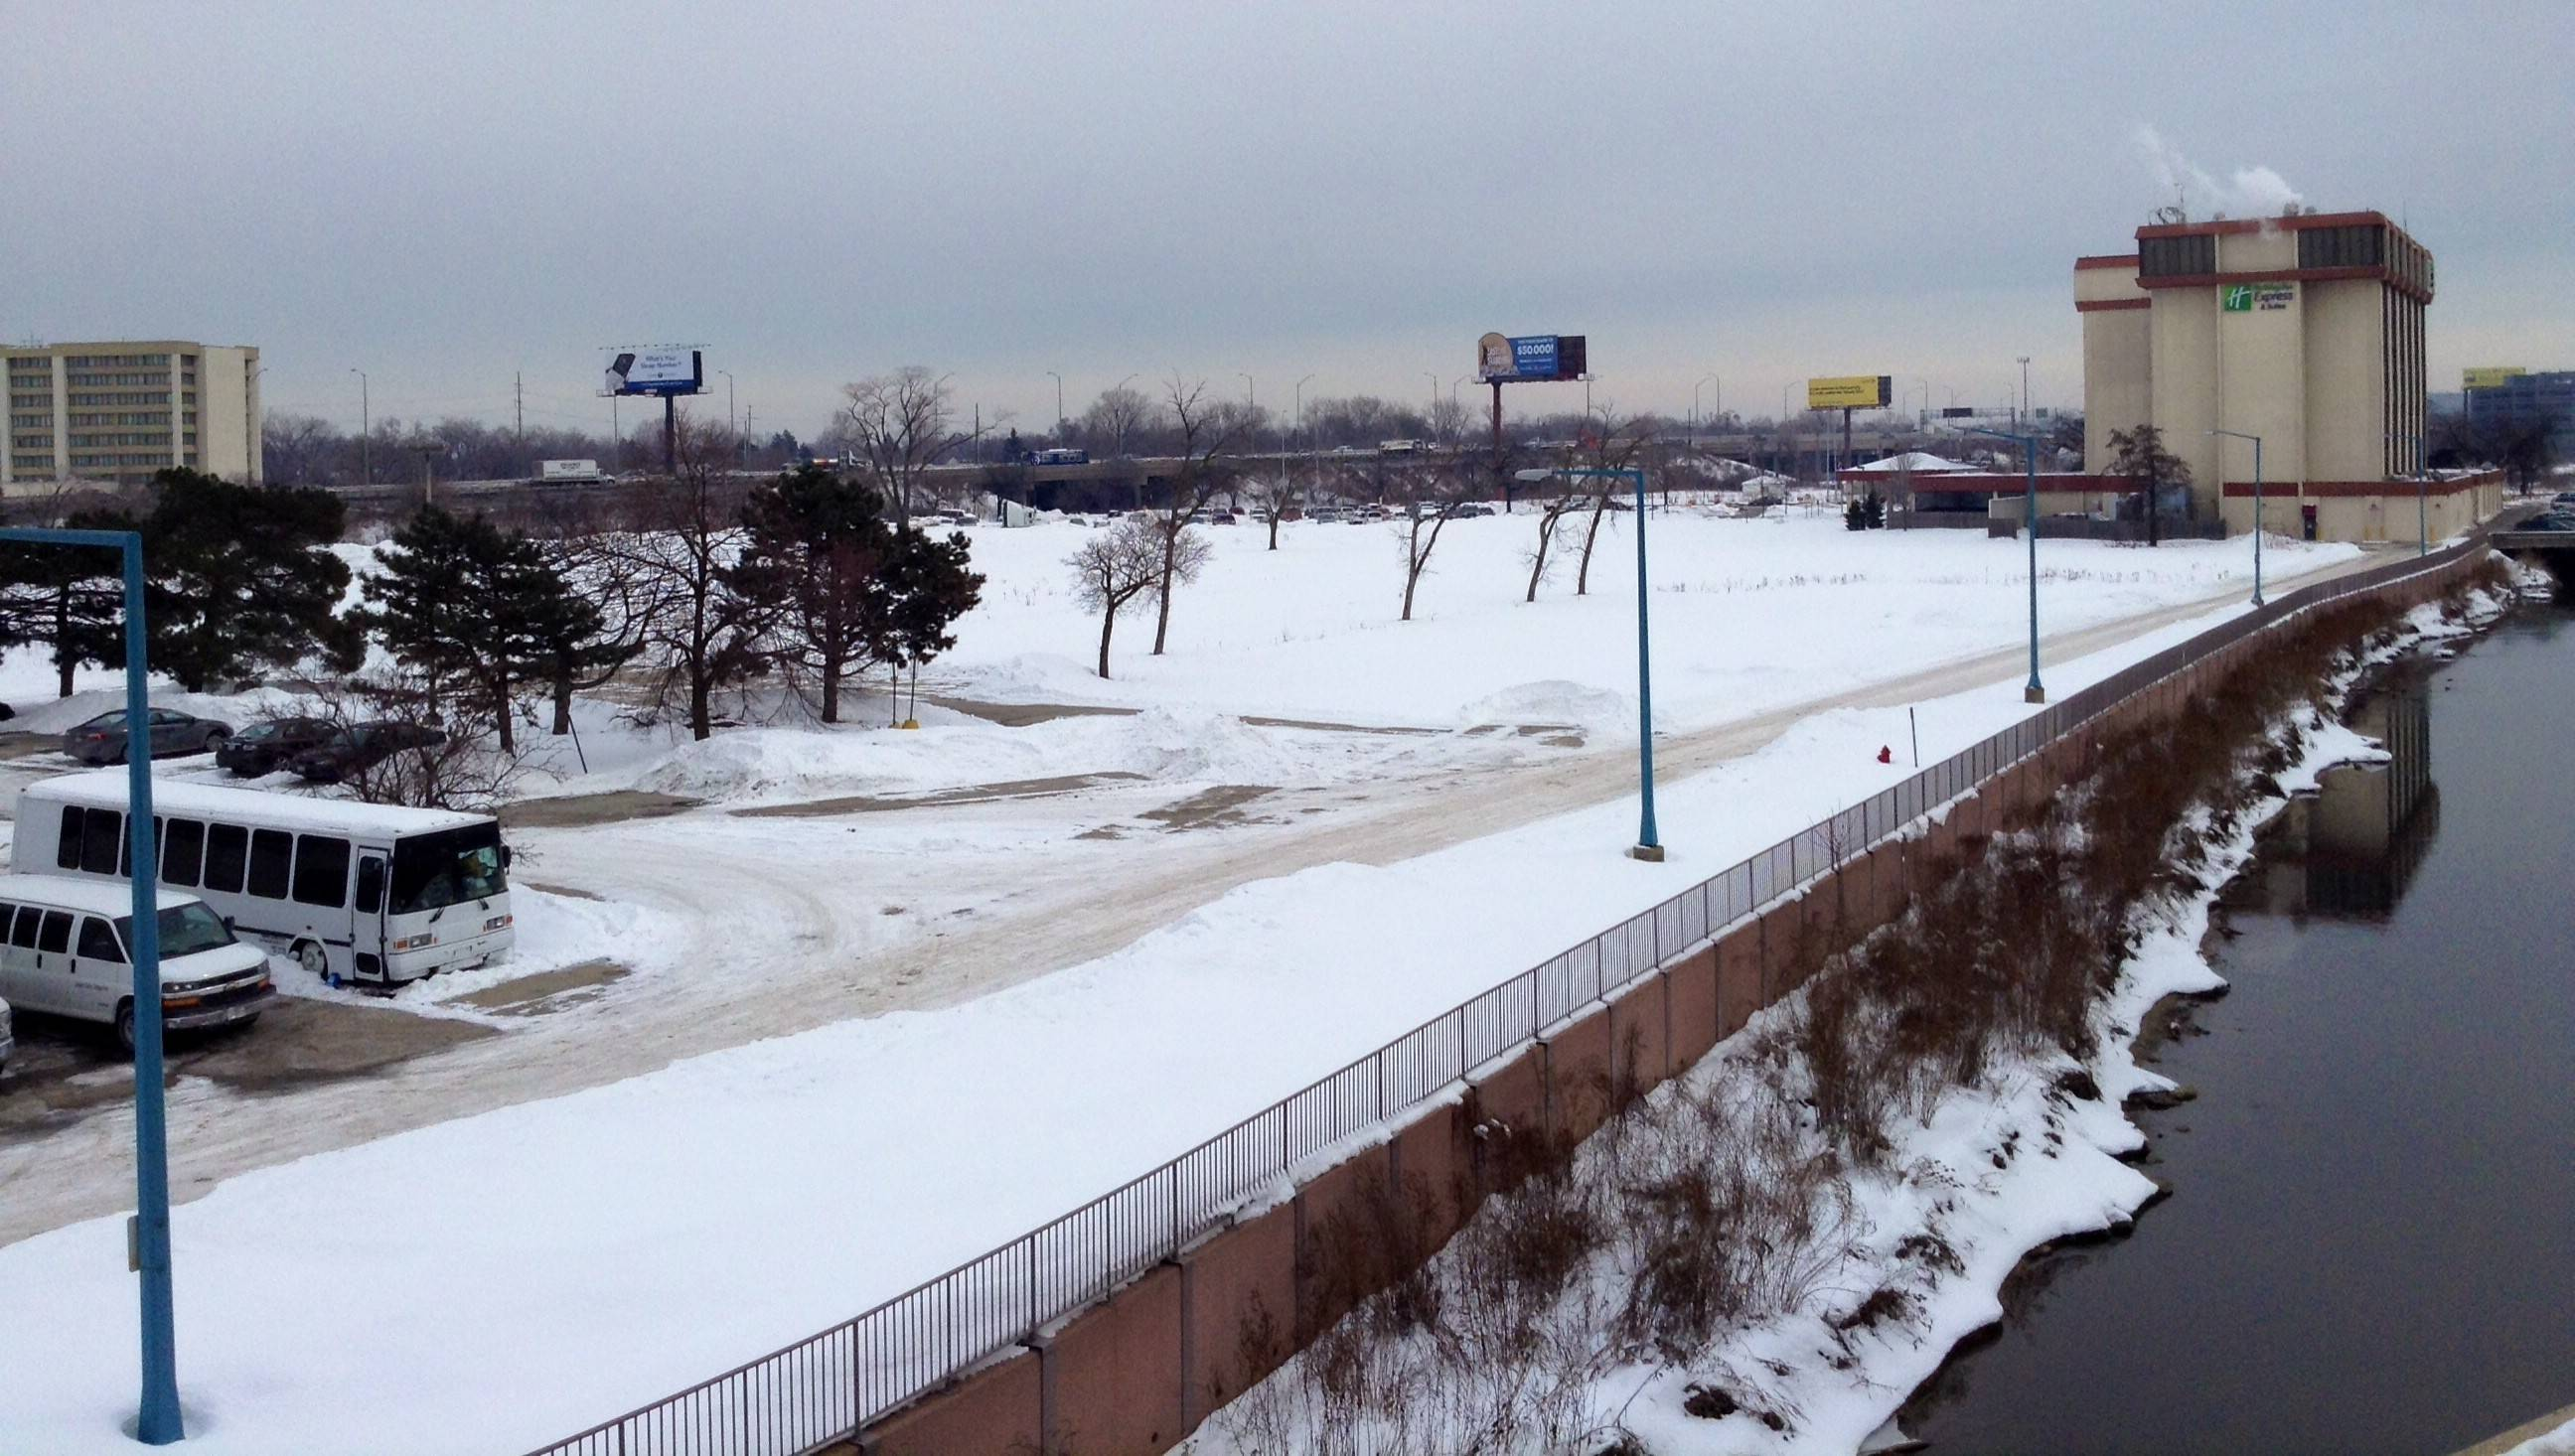 A former par 3 golf course next to a hotel at Higgins and Mannheim roads in Rosemont has been marketed as a location for office developments, but nothing has been secured as of yet, officials say.